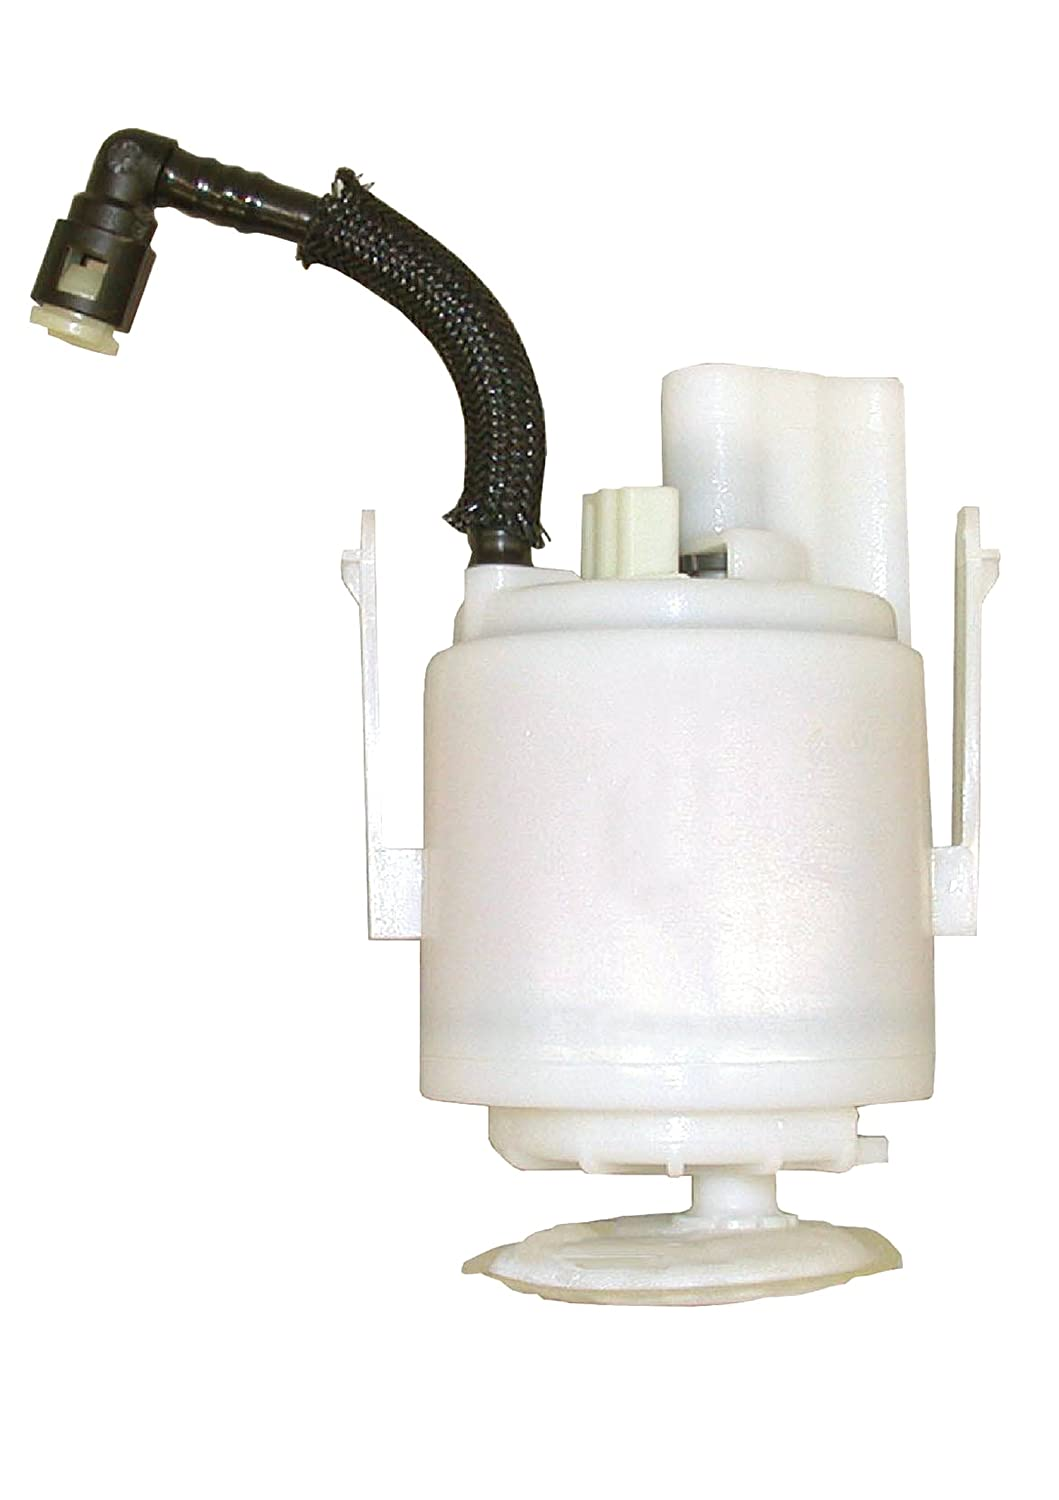 Airtex E8427M Fuel Pump Module Assembly